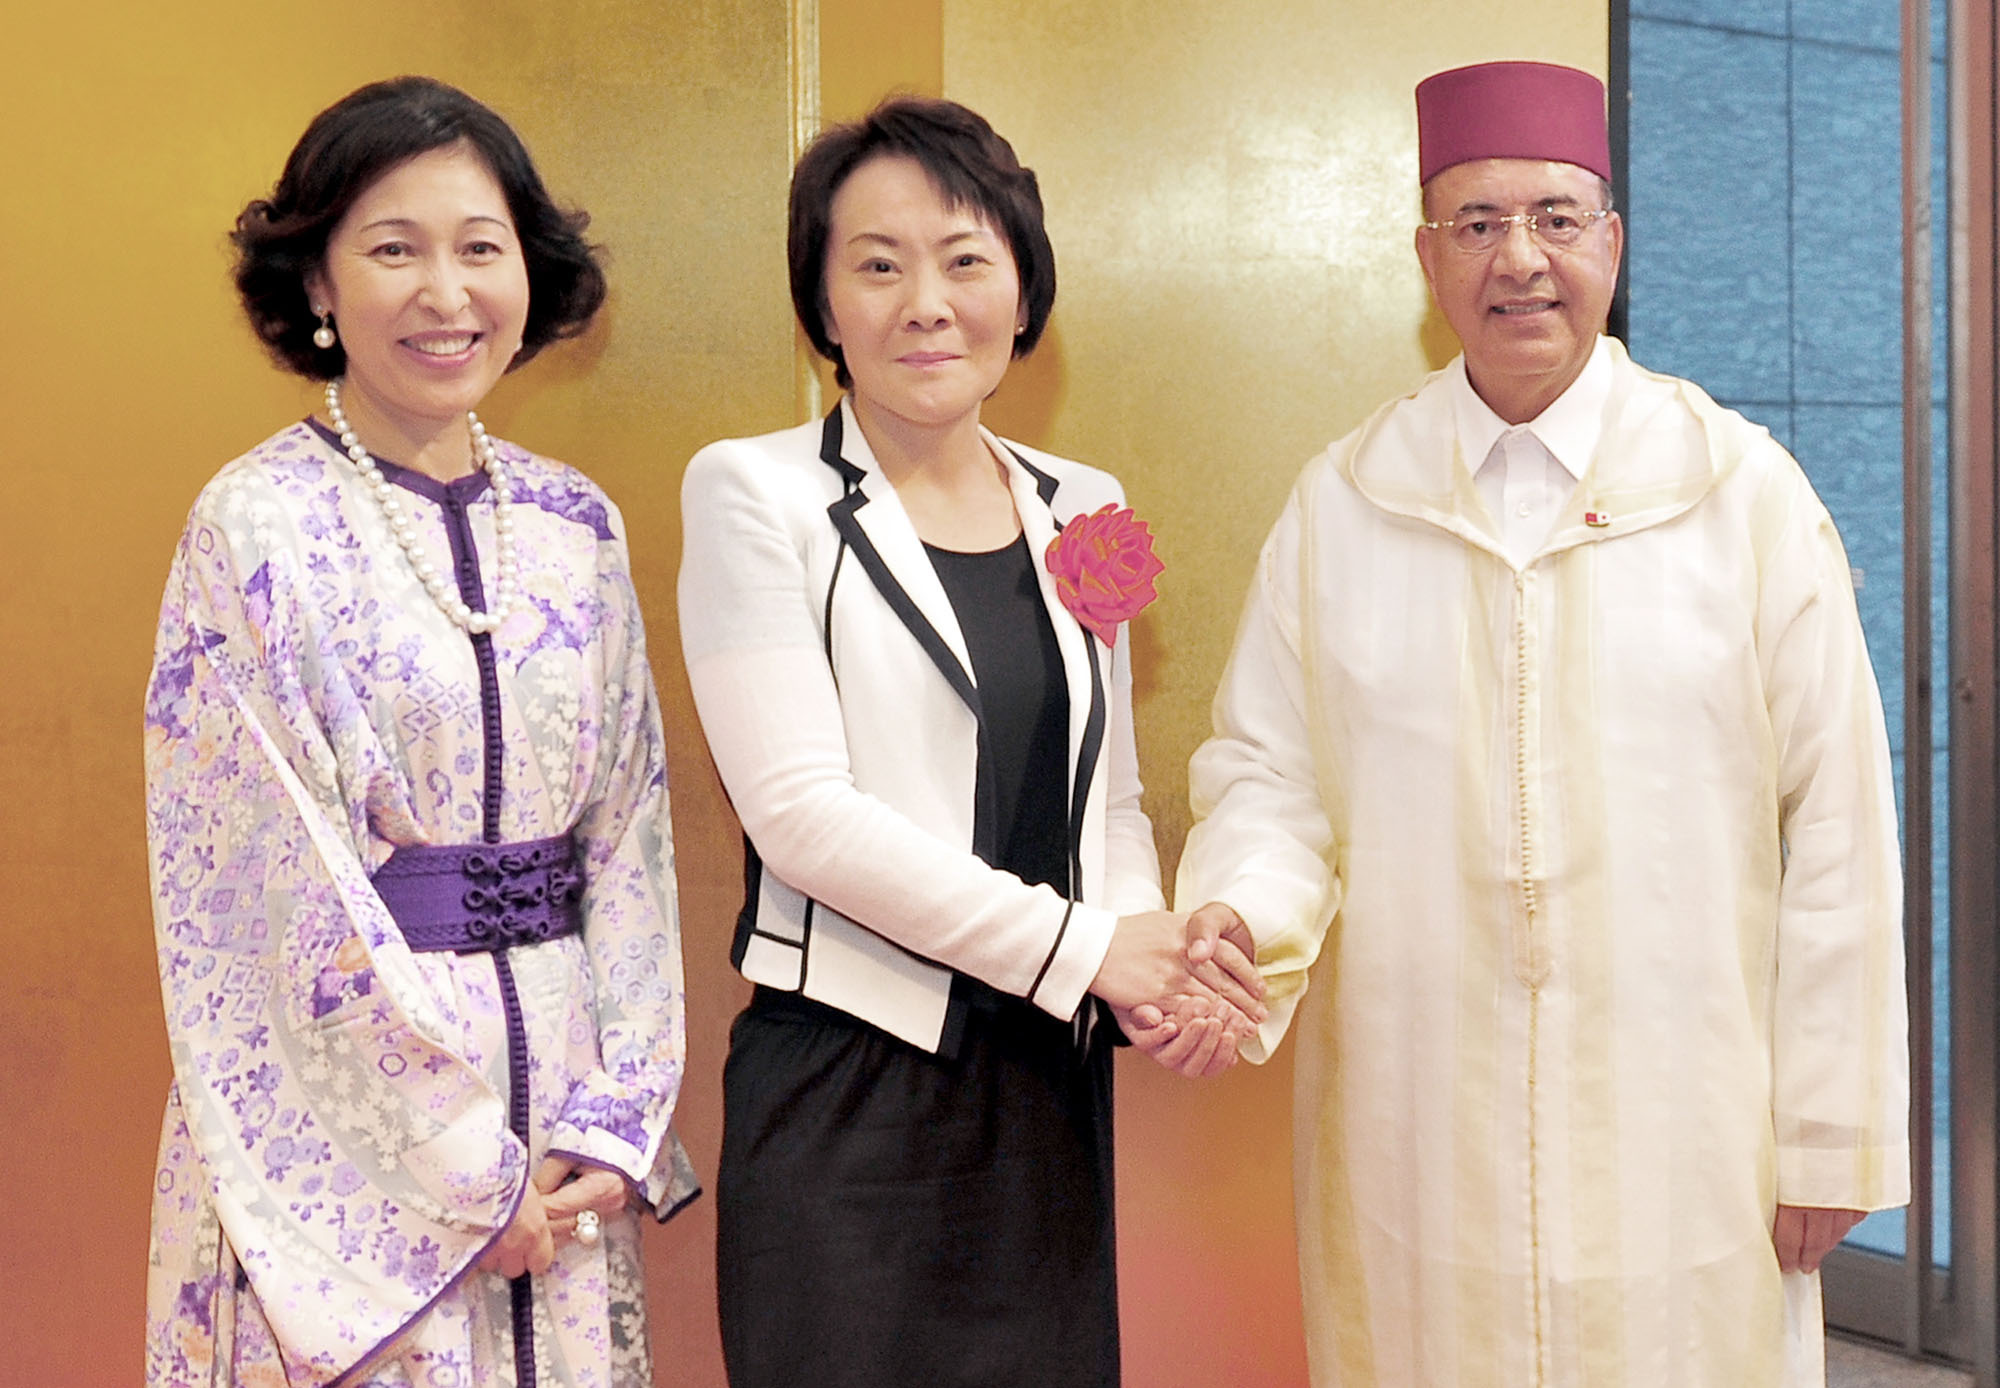 Moroccan Ambassador Samir Arrour (right) and his wife Utako welcome Miki Yamada (center), parliamentary vice minister for foreign affairs, during a reception to celebrate the 17th anniversary of the enthronement of King Mohammed VI and the 60th anniversary of the establishment of diplomatic relations between the kingdom and Japan at Palace Hotel in Tokyo on Aug. 1. | YOSHIAKI MIURA